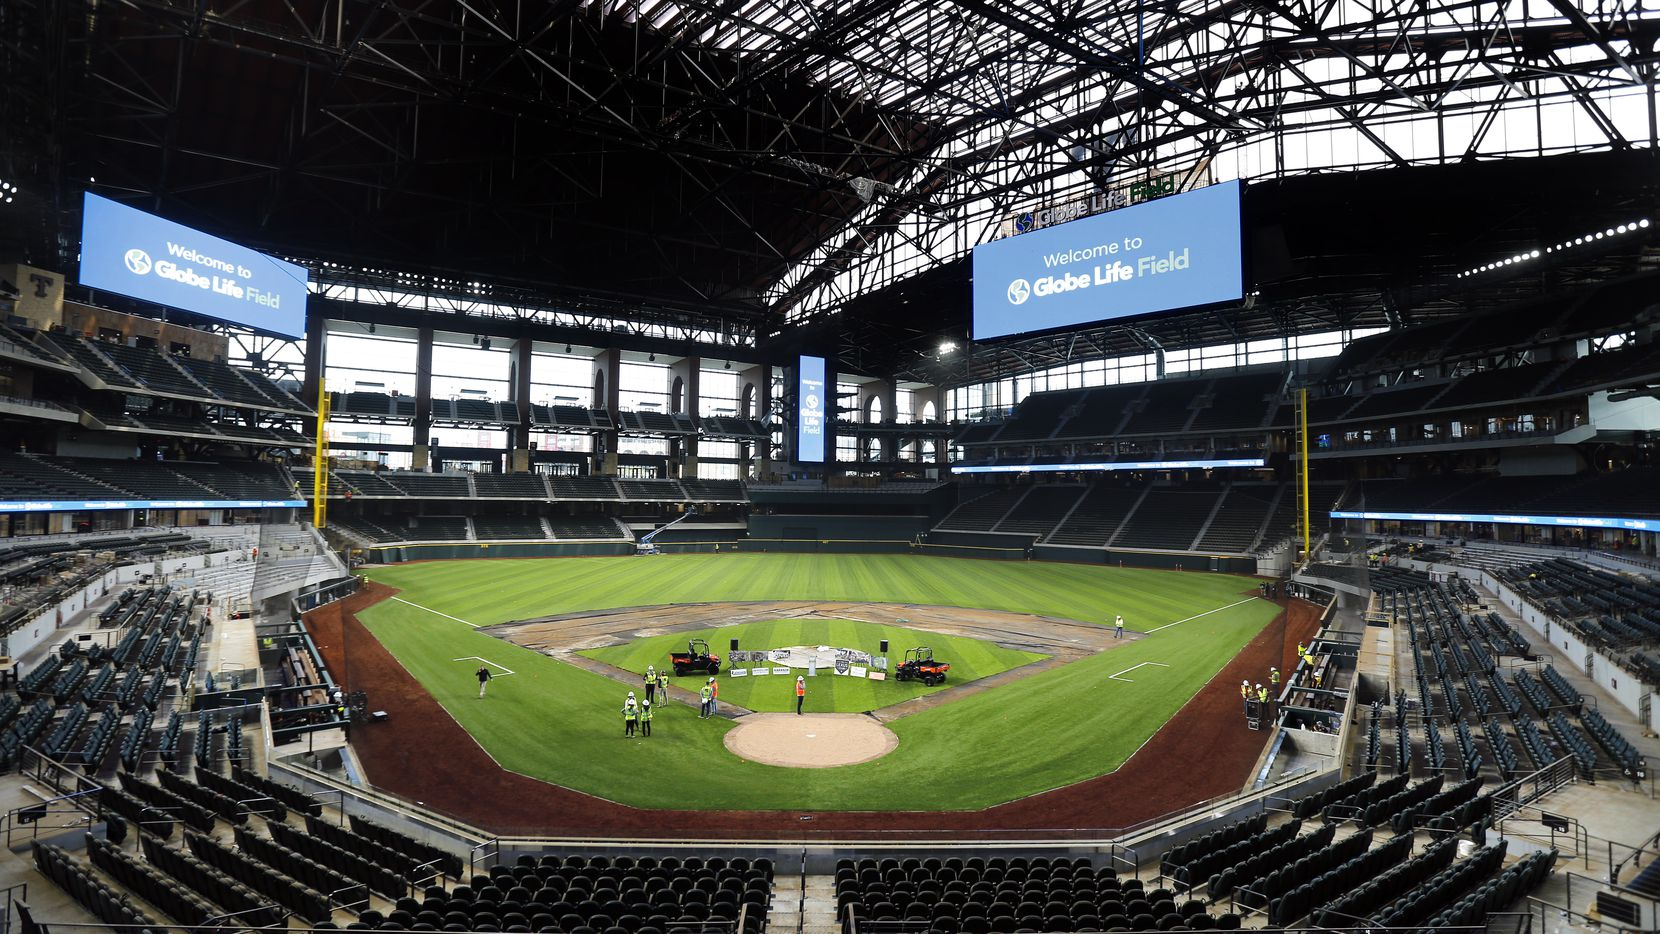 The artificial turf by Shaw Sports Turf is being installed at the new Globe Life Field under construction in Arlington, Texas, Wednesday, March 4, 2020. The ballpark is nearing completion.